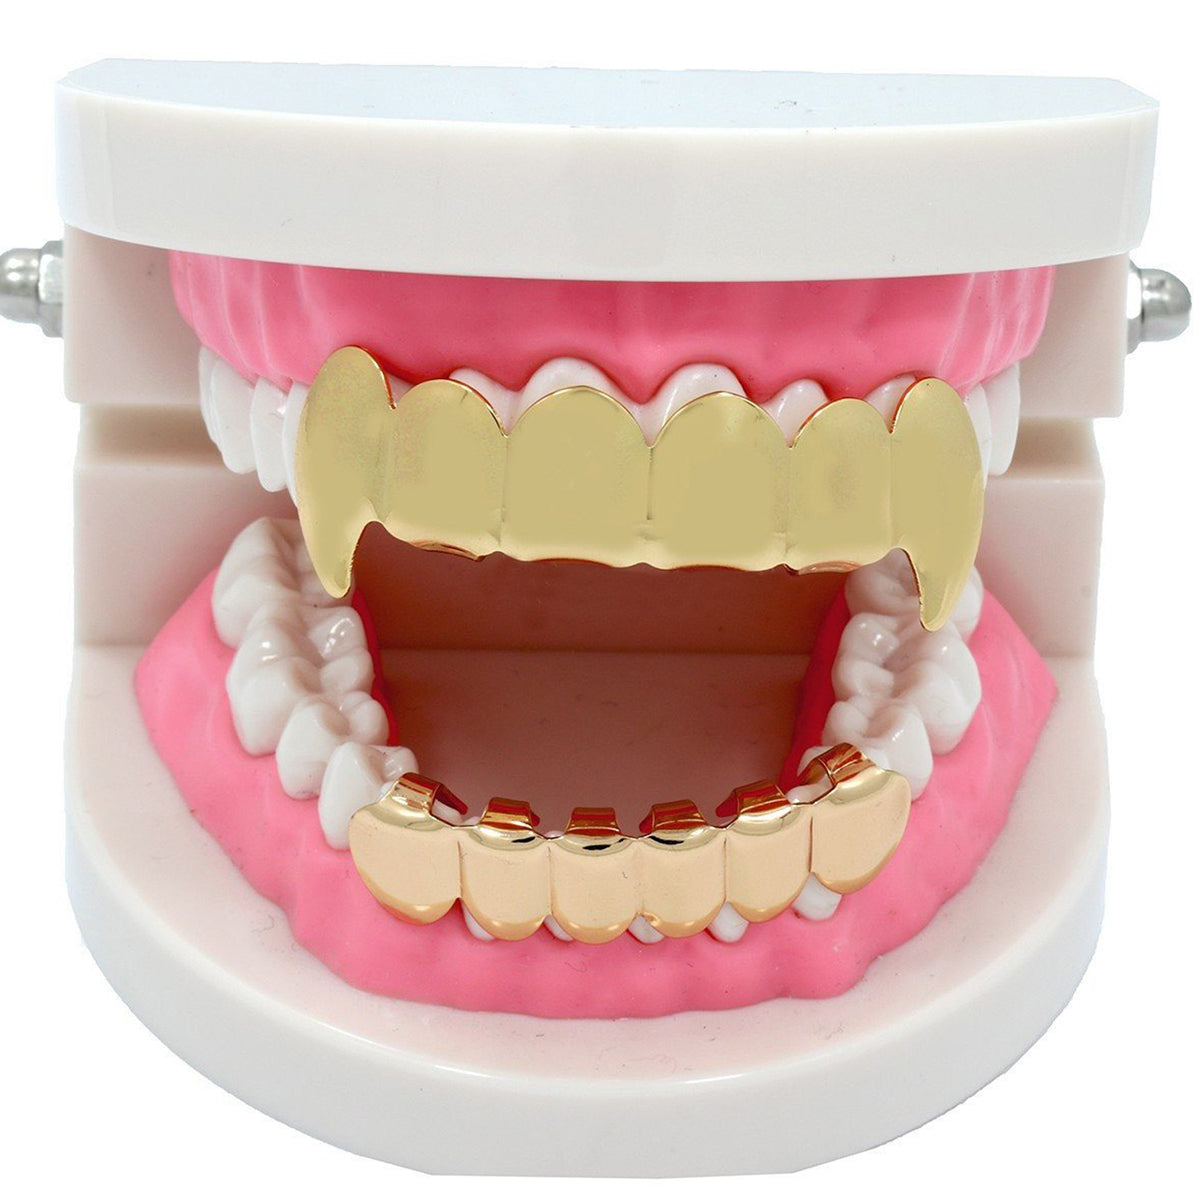 GRILLZ SET GOLD FANG PLAIN BLINGKING